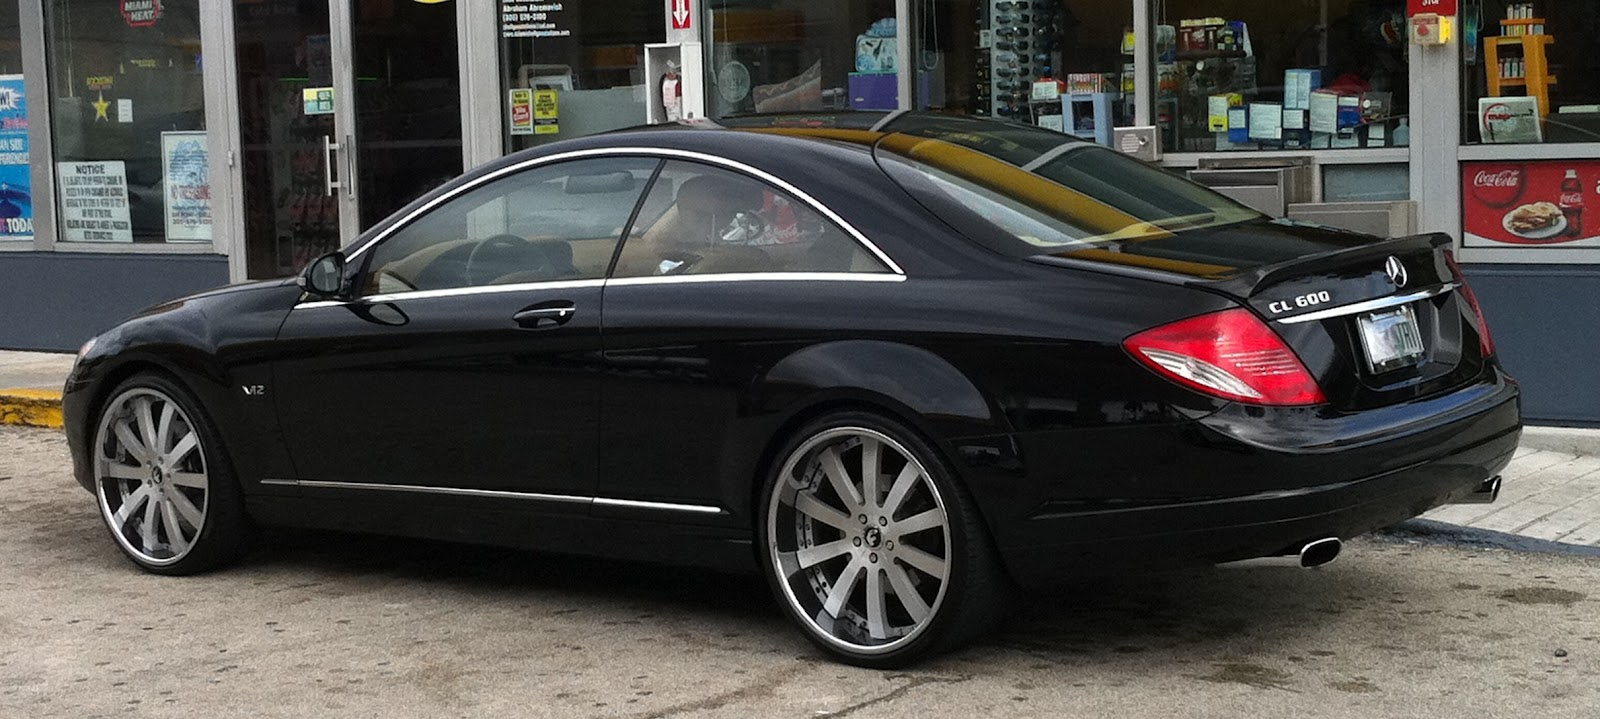 Black mercedes benz cl 600 with custom rims for Mercedes benz custom cars